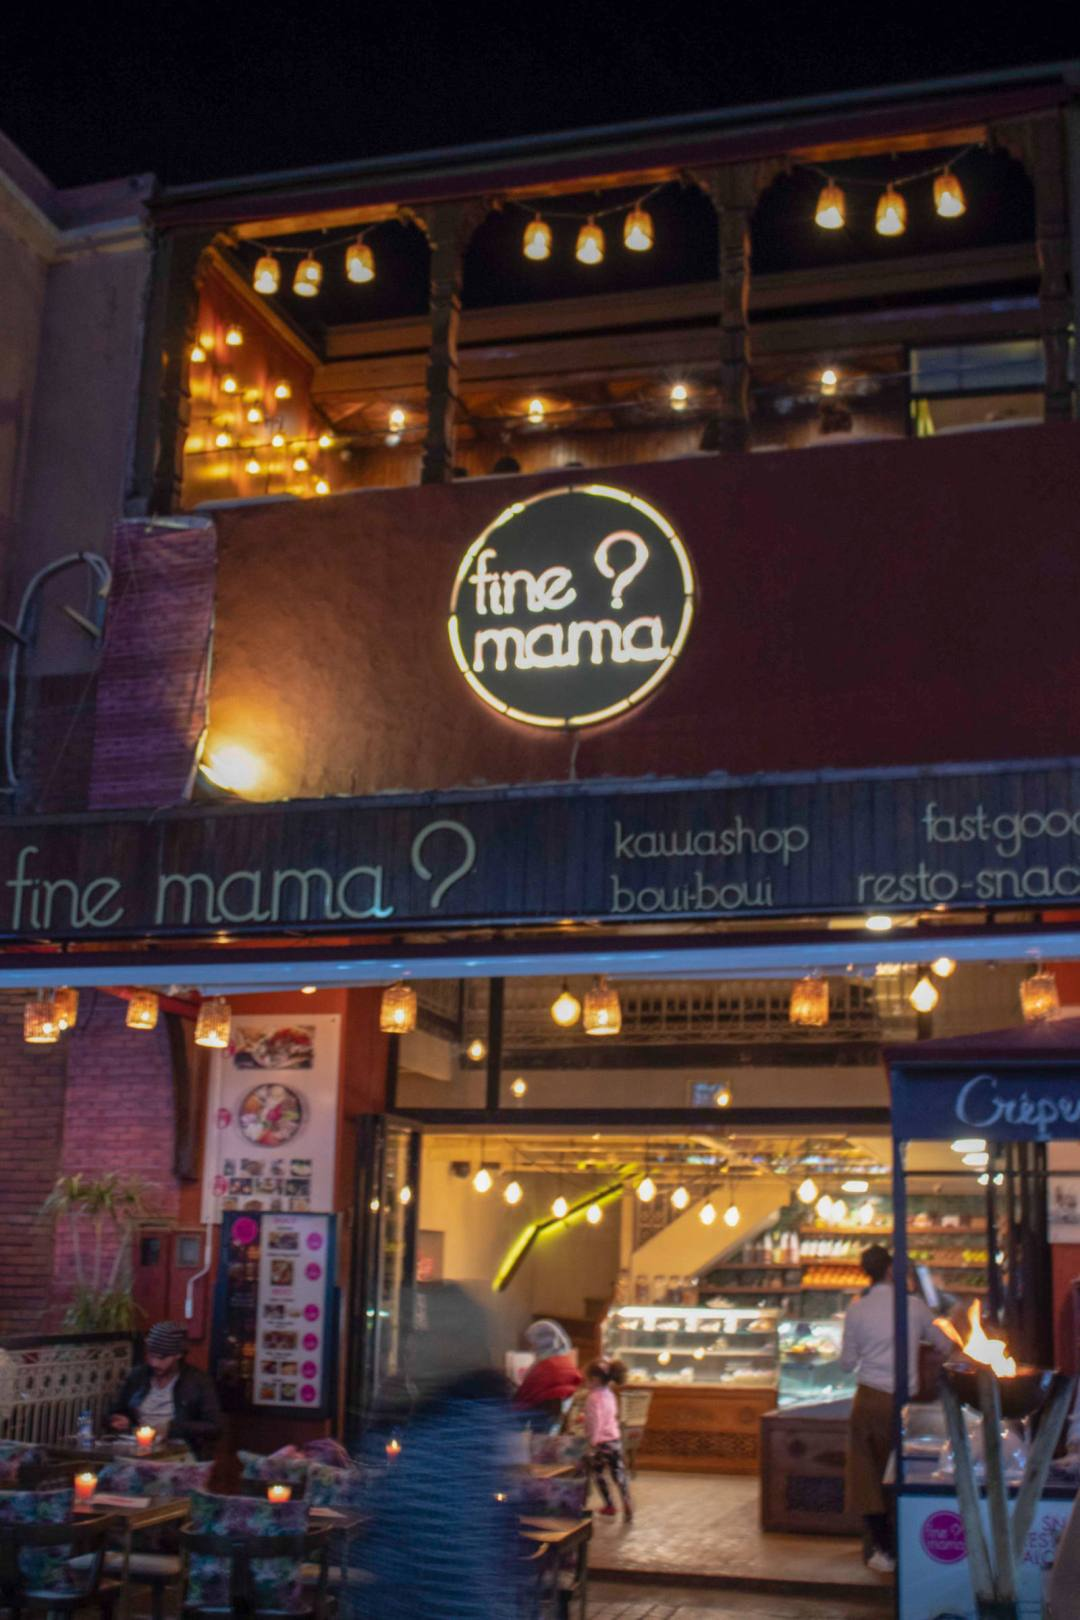 entrance to Fine Mama? restaurant in Marrakech